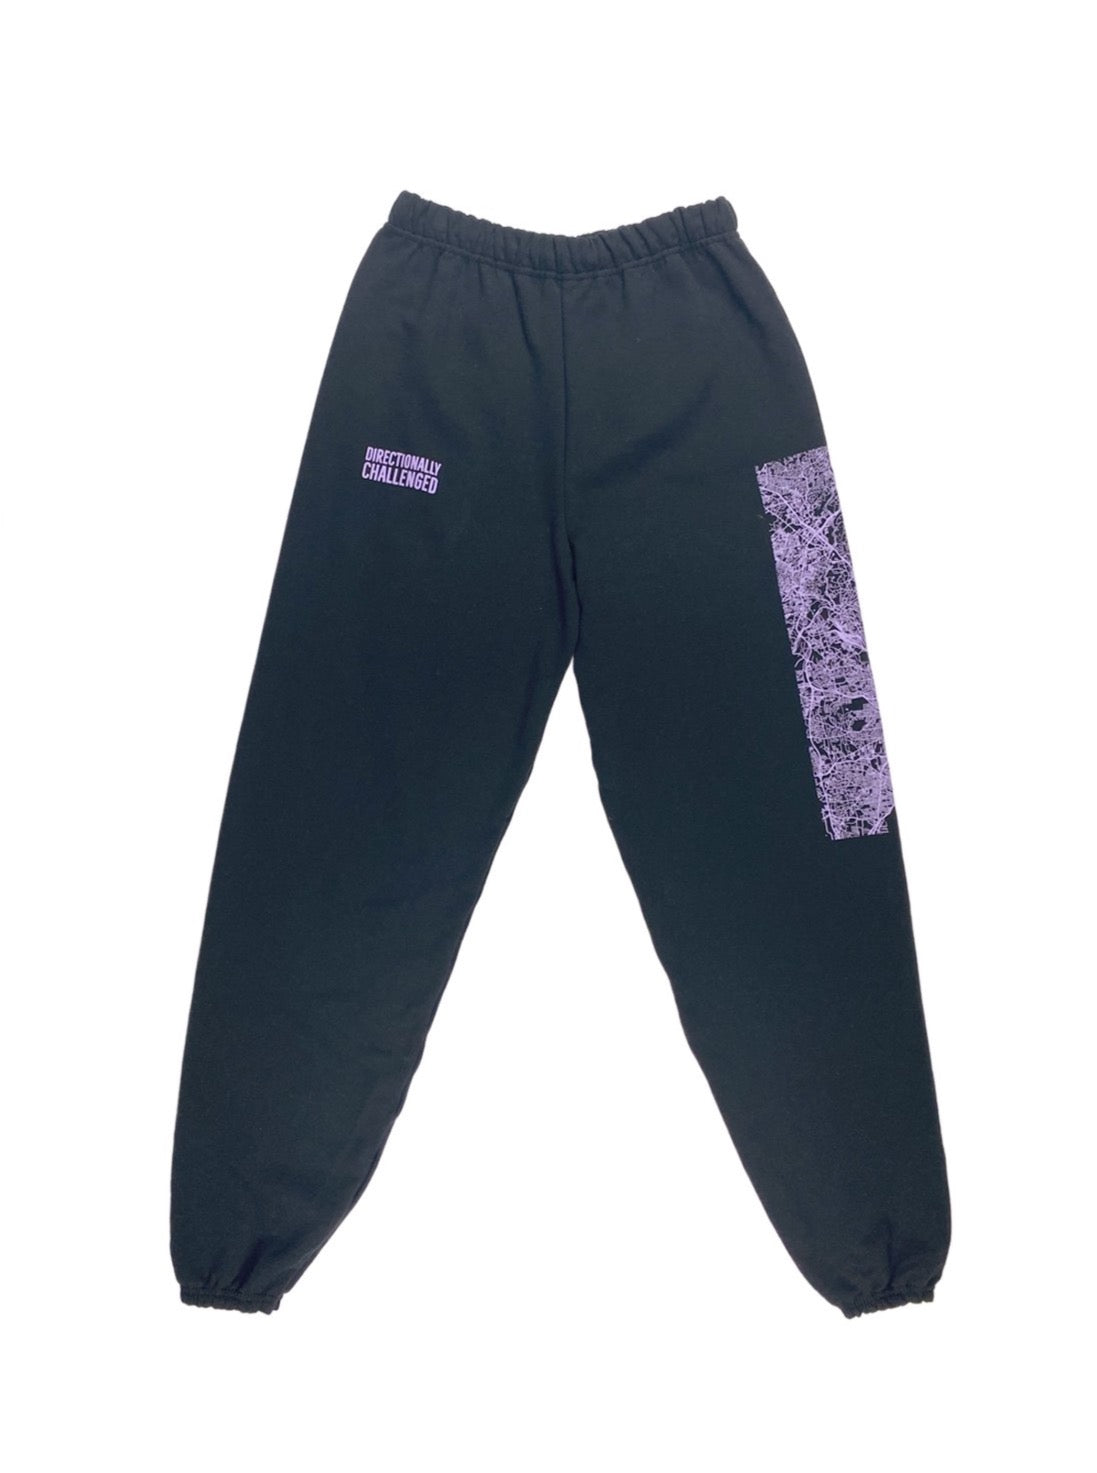 DIRECTIONALLY CHALLENGED ROAD MAP SWEAT PANT BLACK